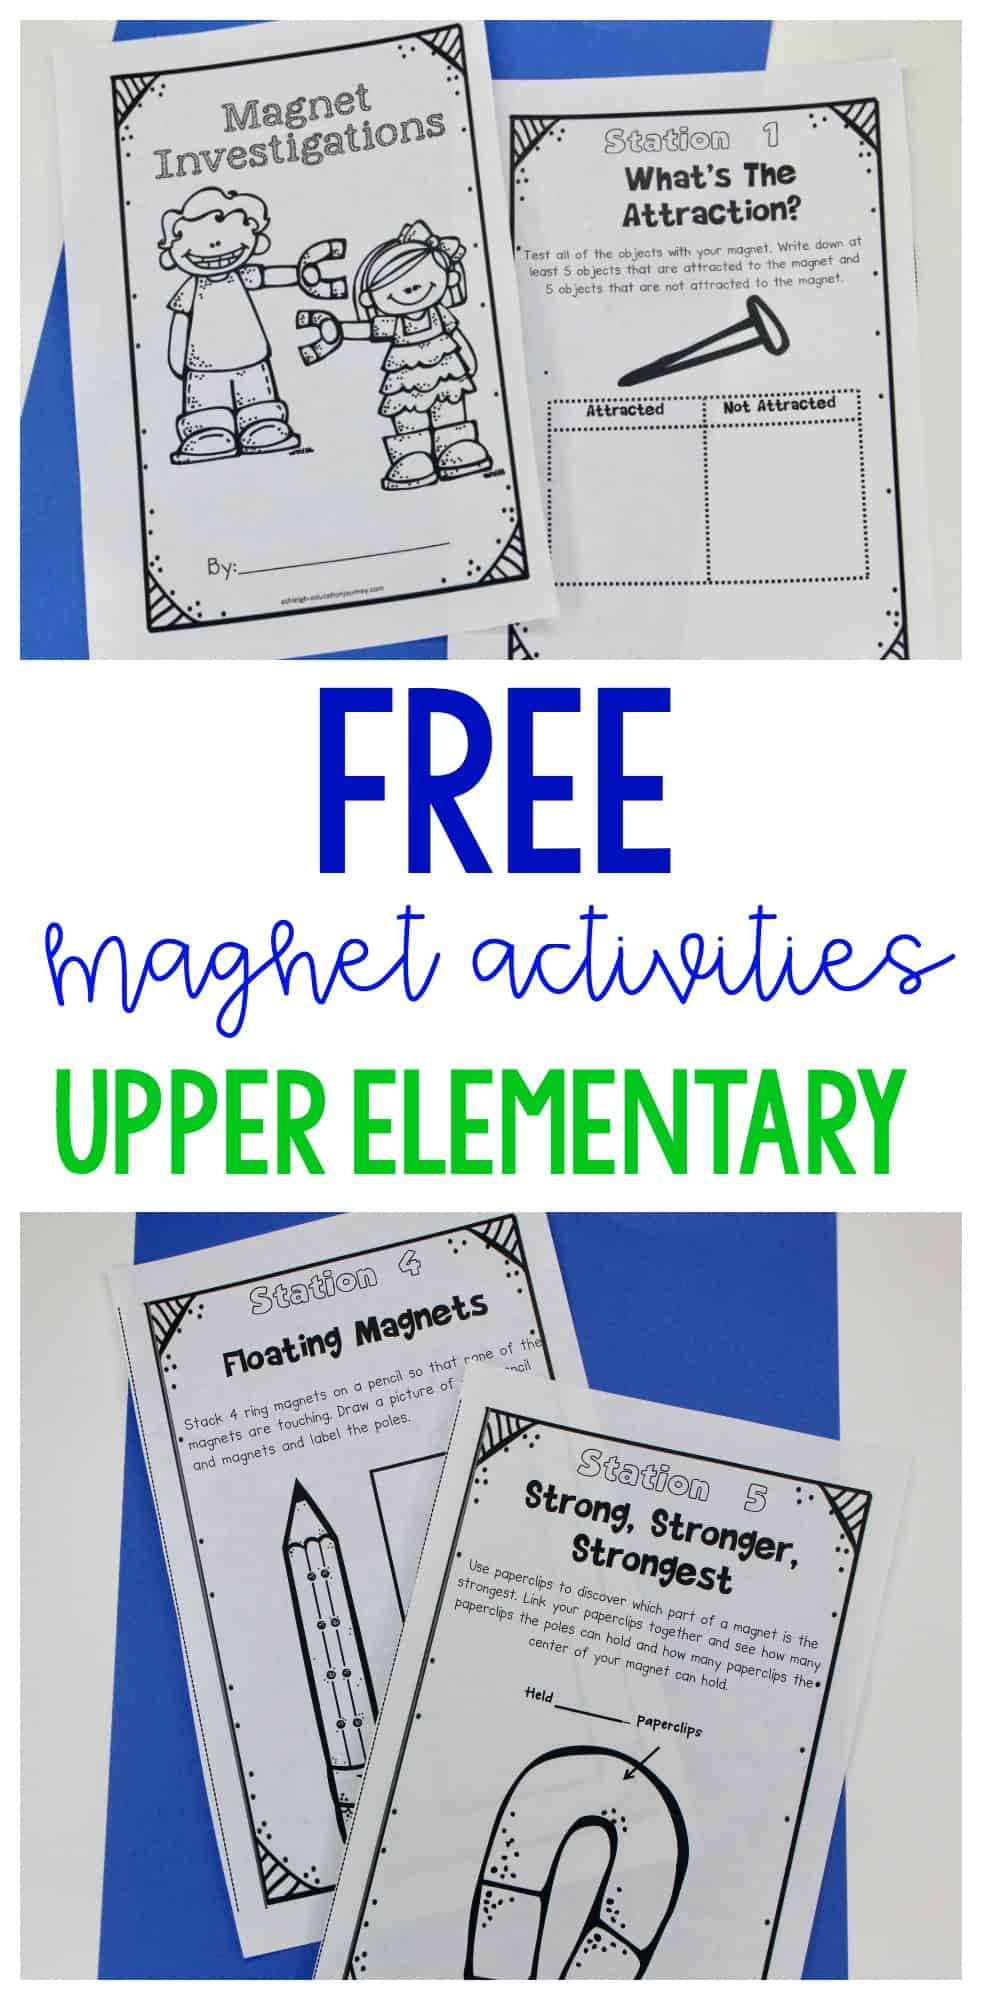 Get a FREE magnet booklet with hands-on activities for upper elementary science